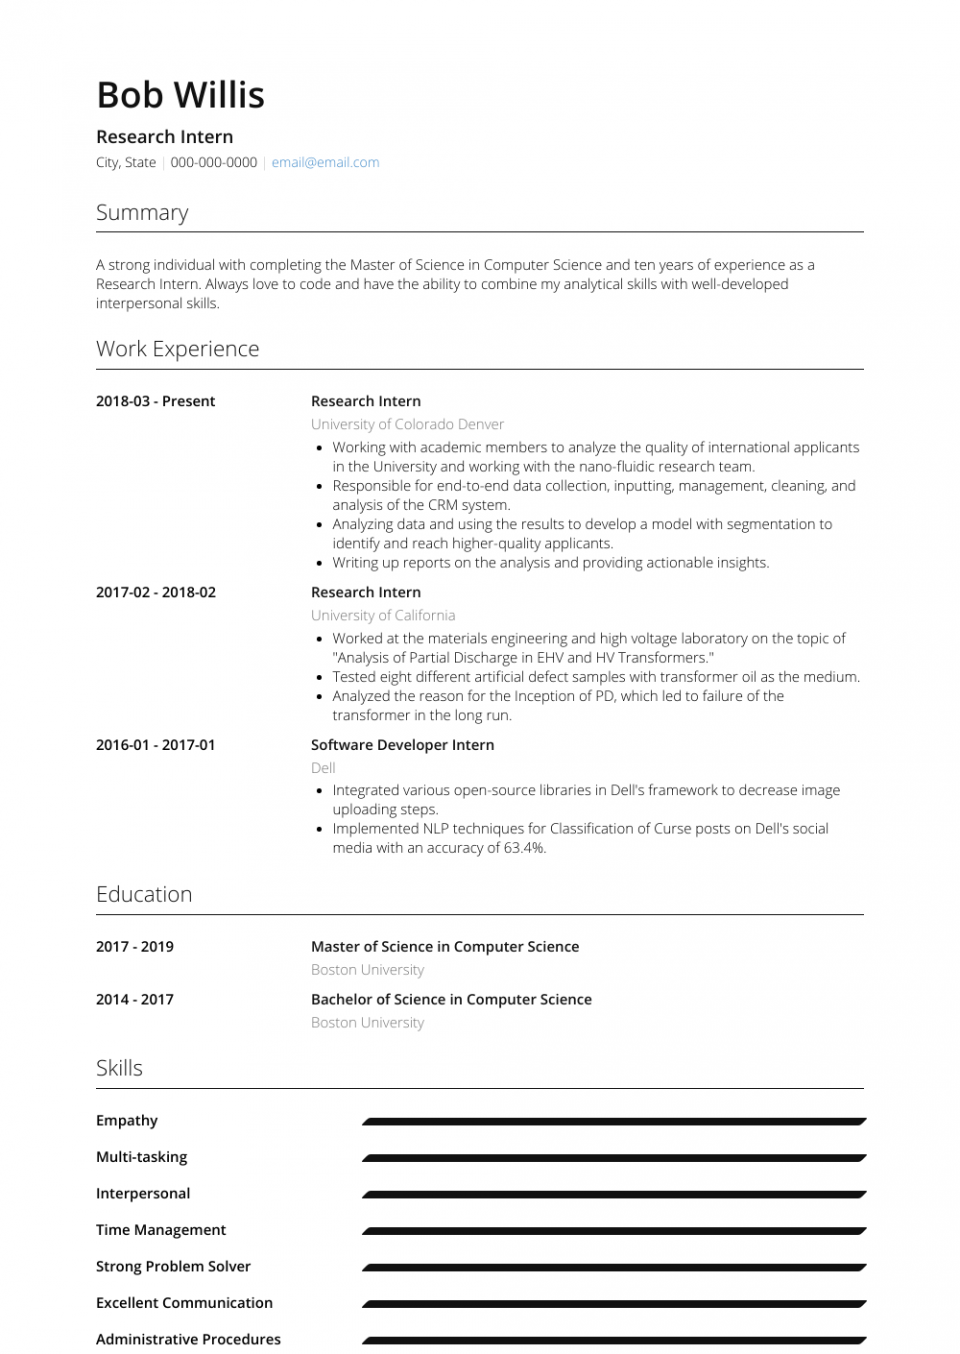 Computer Science Student Resume No Experience Luxury Legal Intern Resume Samples Templates Visualcv Inte Student Resume Student Resume Template Science Student